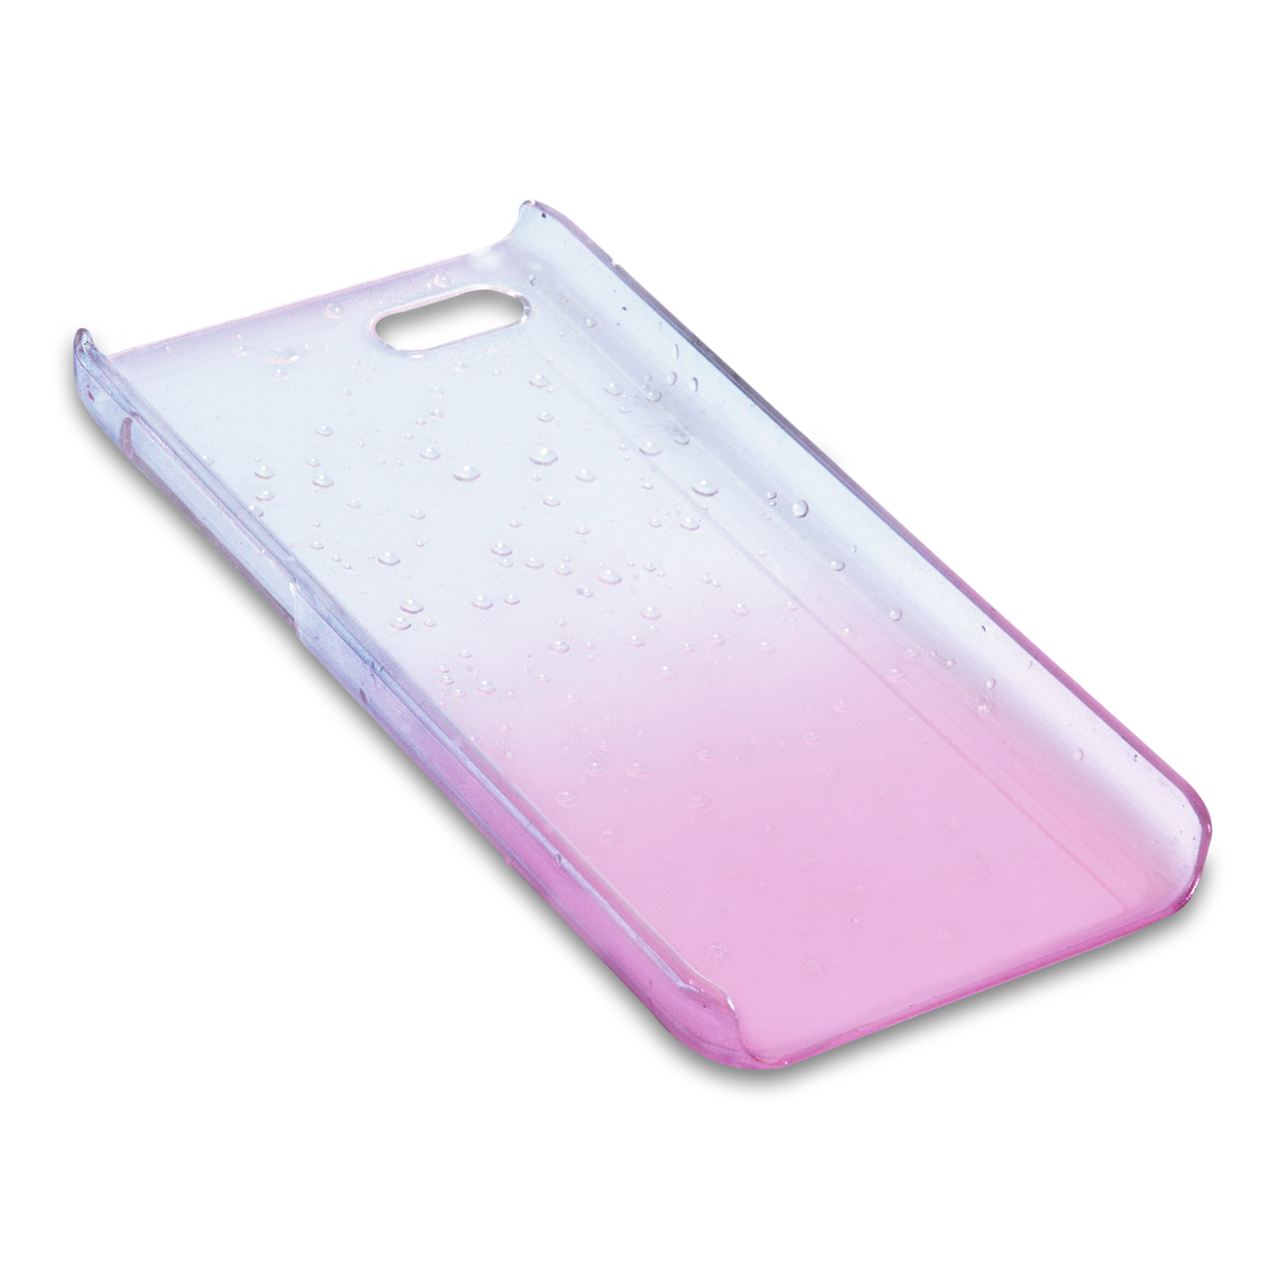 YouSave Accessories iPhone 5C Raindrop Hard Case - Baby Pink